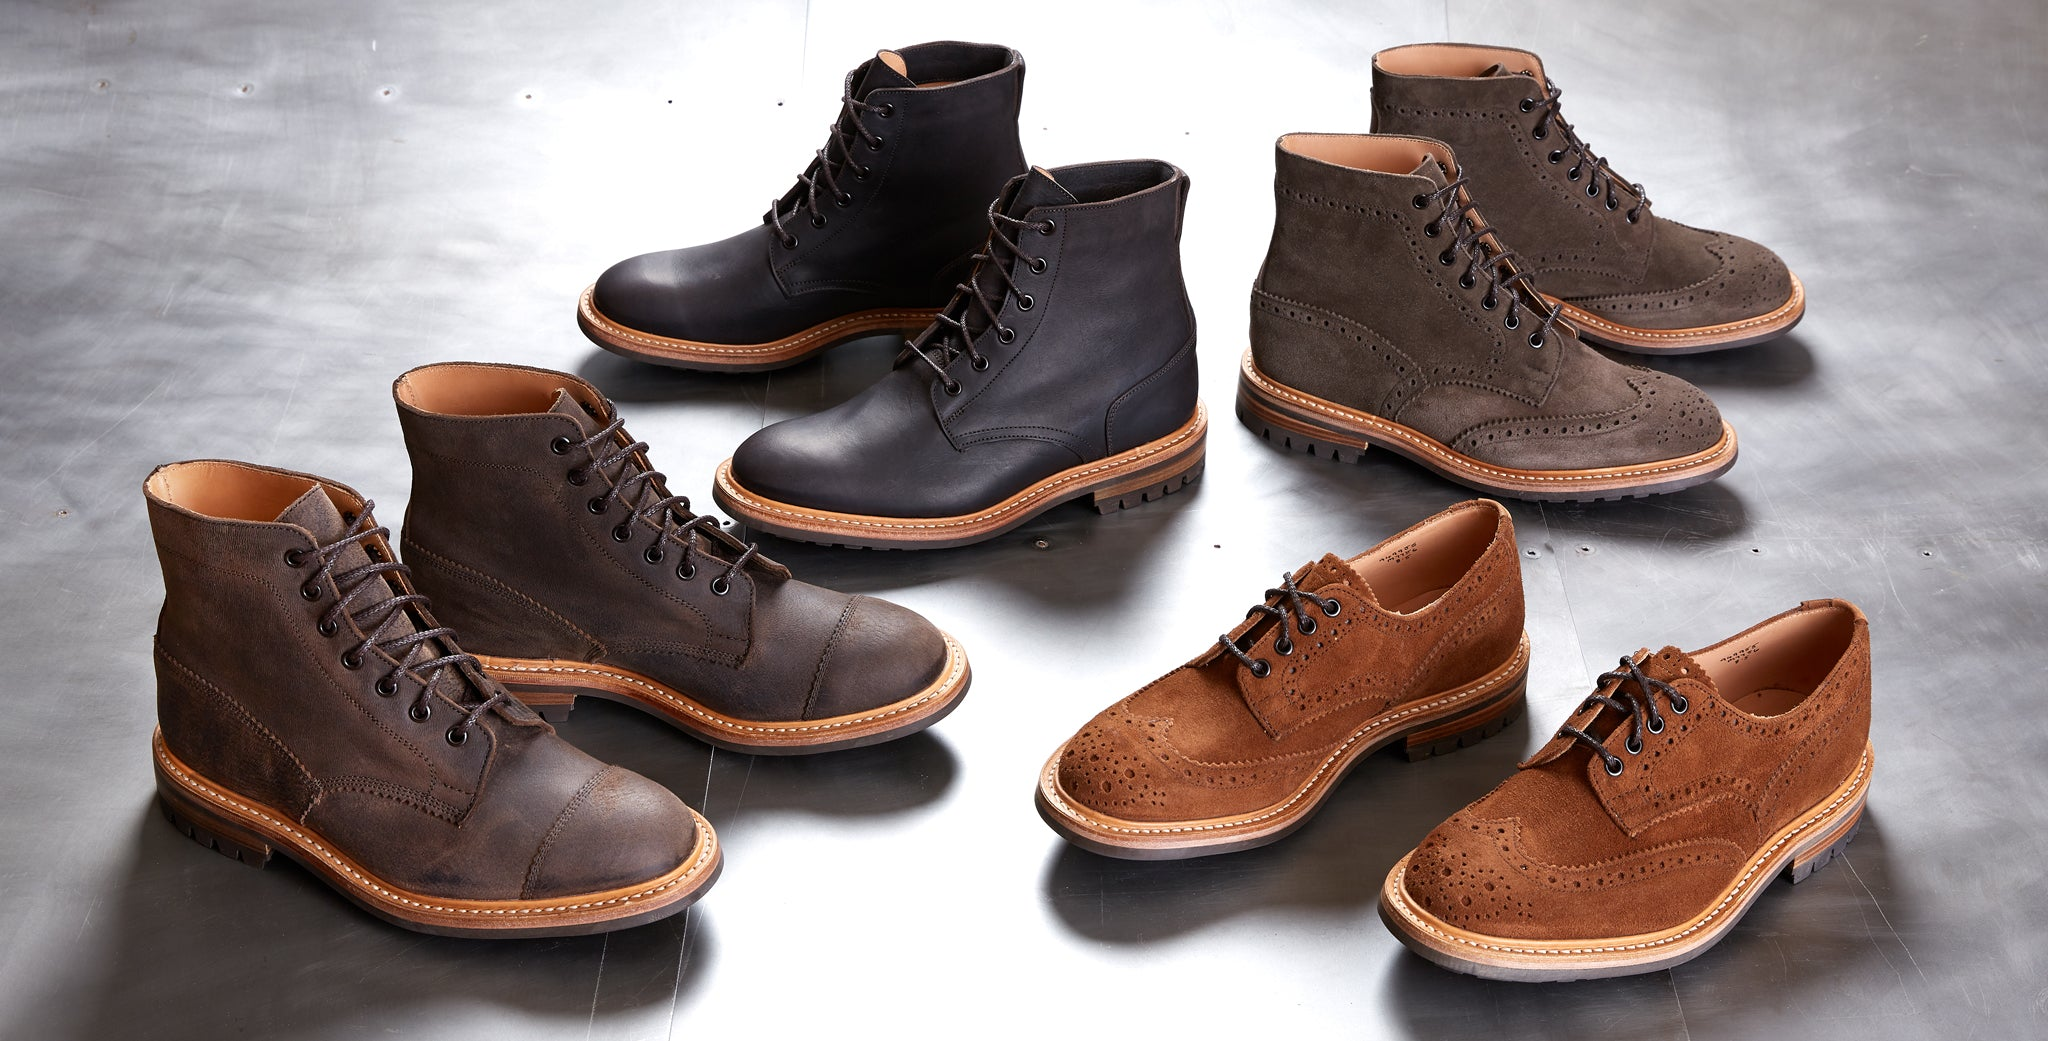 Division Road Foundational Footwear Release